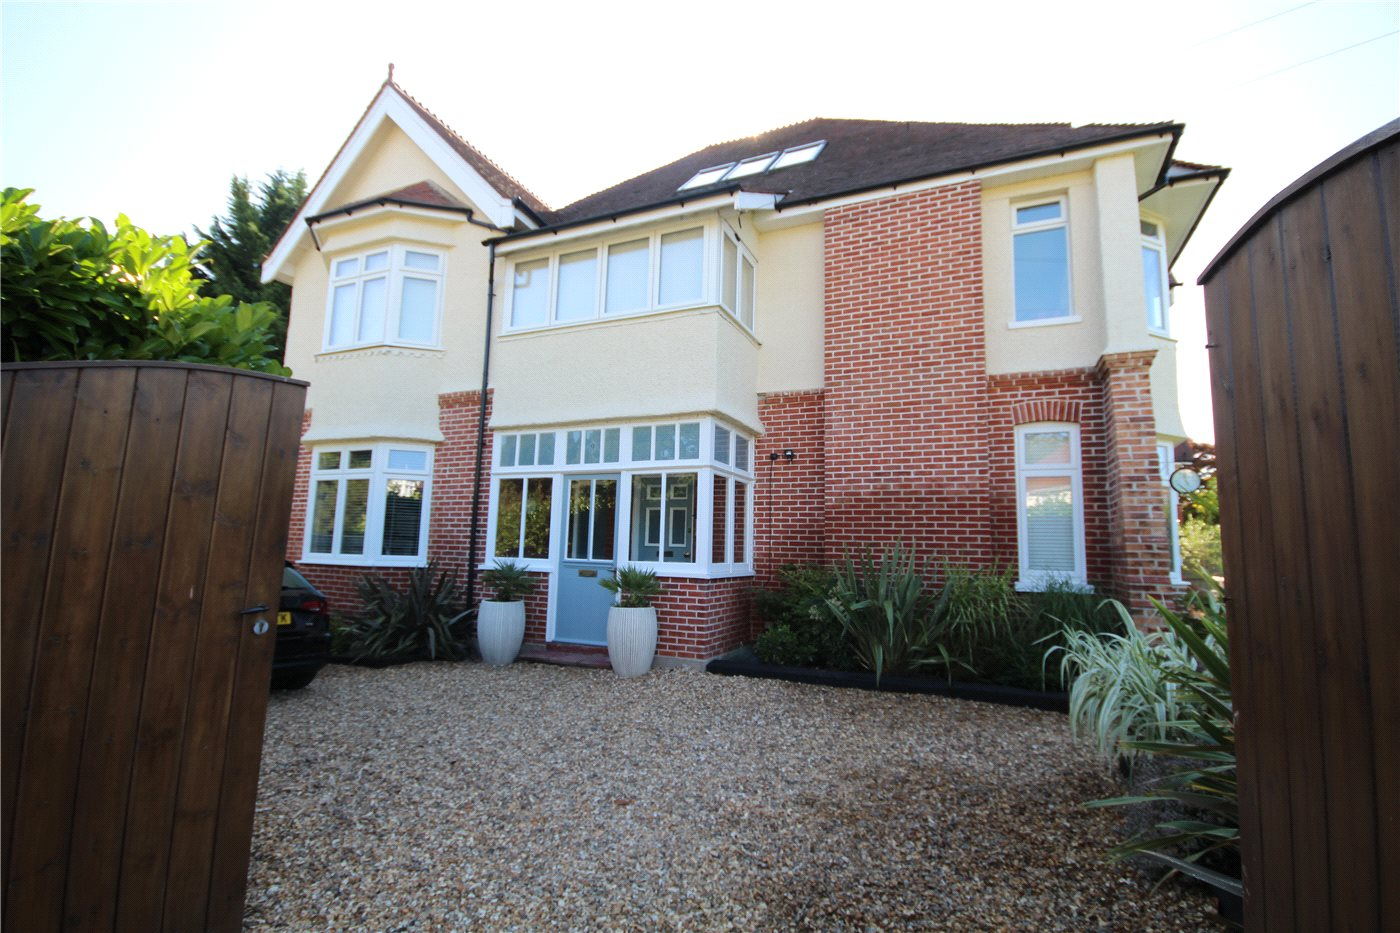 3 Bedrooms Flat for sale in Kings Crescent, Lower Parkstone, Poole, Dorset, BH14